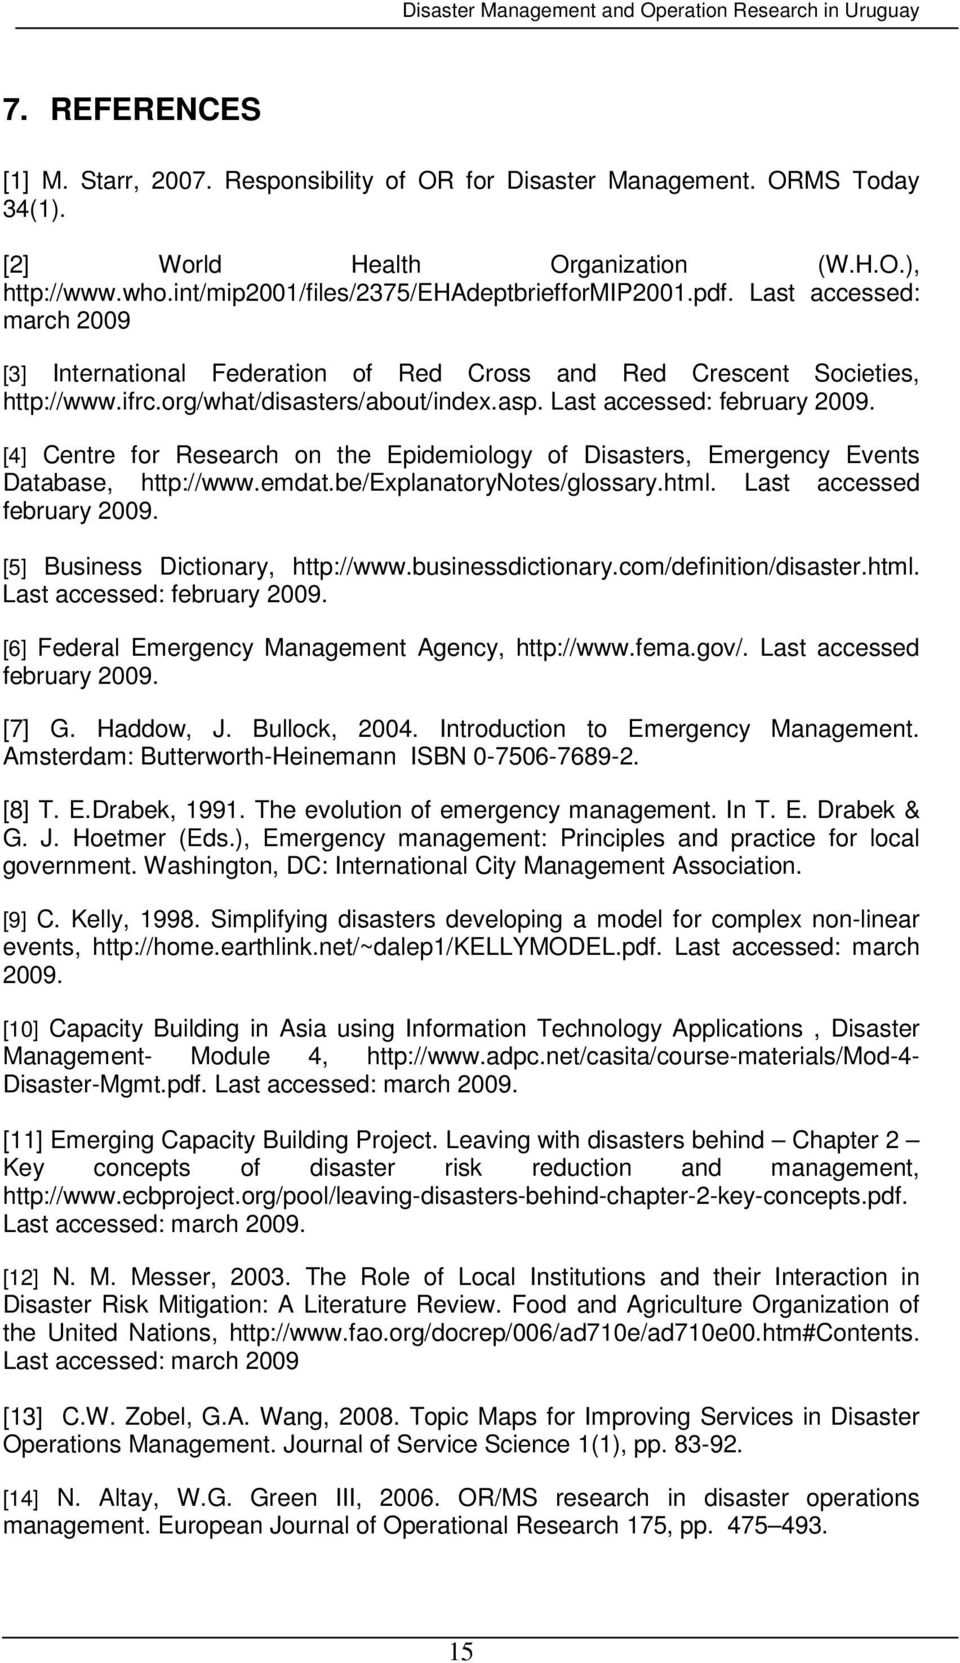 [4] Centre for Research on the Epidemiology of Disasters, Emergency Events Database, http://www.emdat.be/explanatorynotes/glossary.html. Last accessed february 2009.